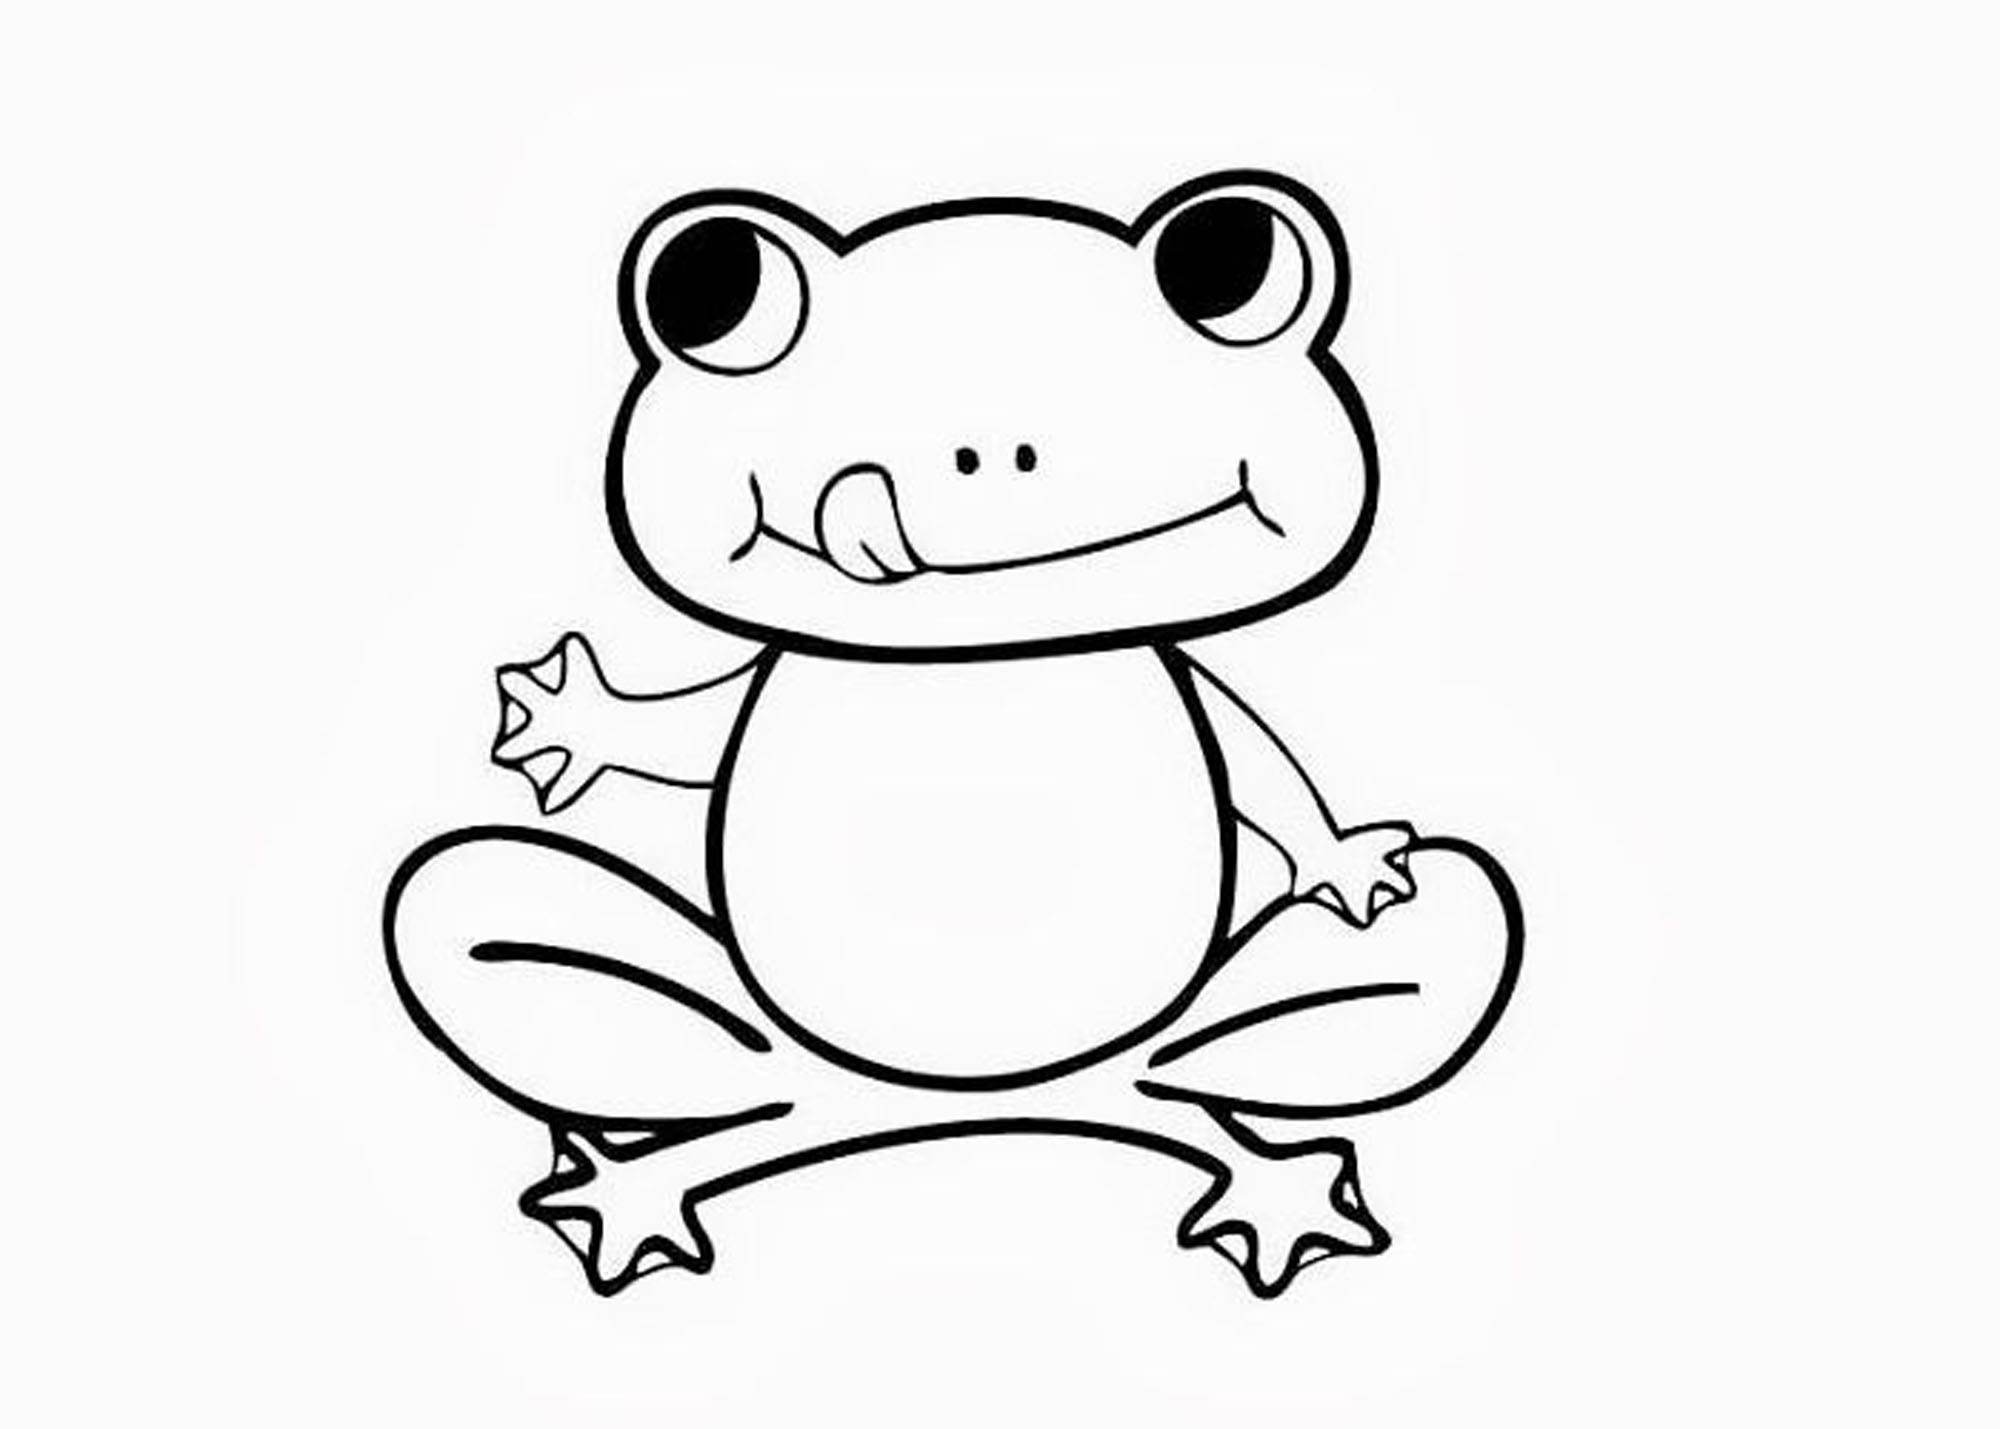 drawing kermit the frog muppets drawing at getdrawings free download drawing frog the kermit